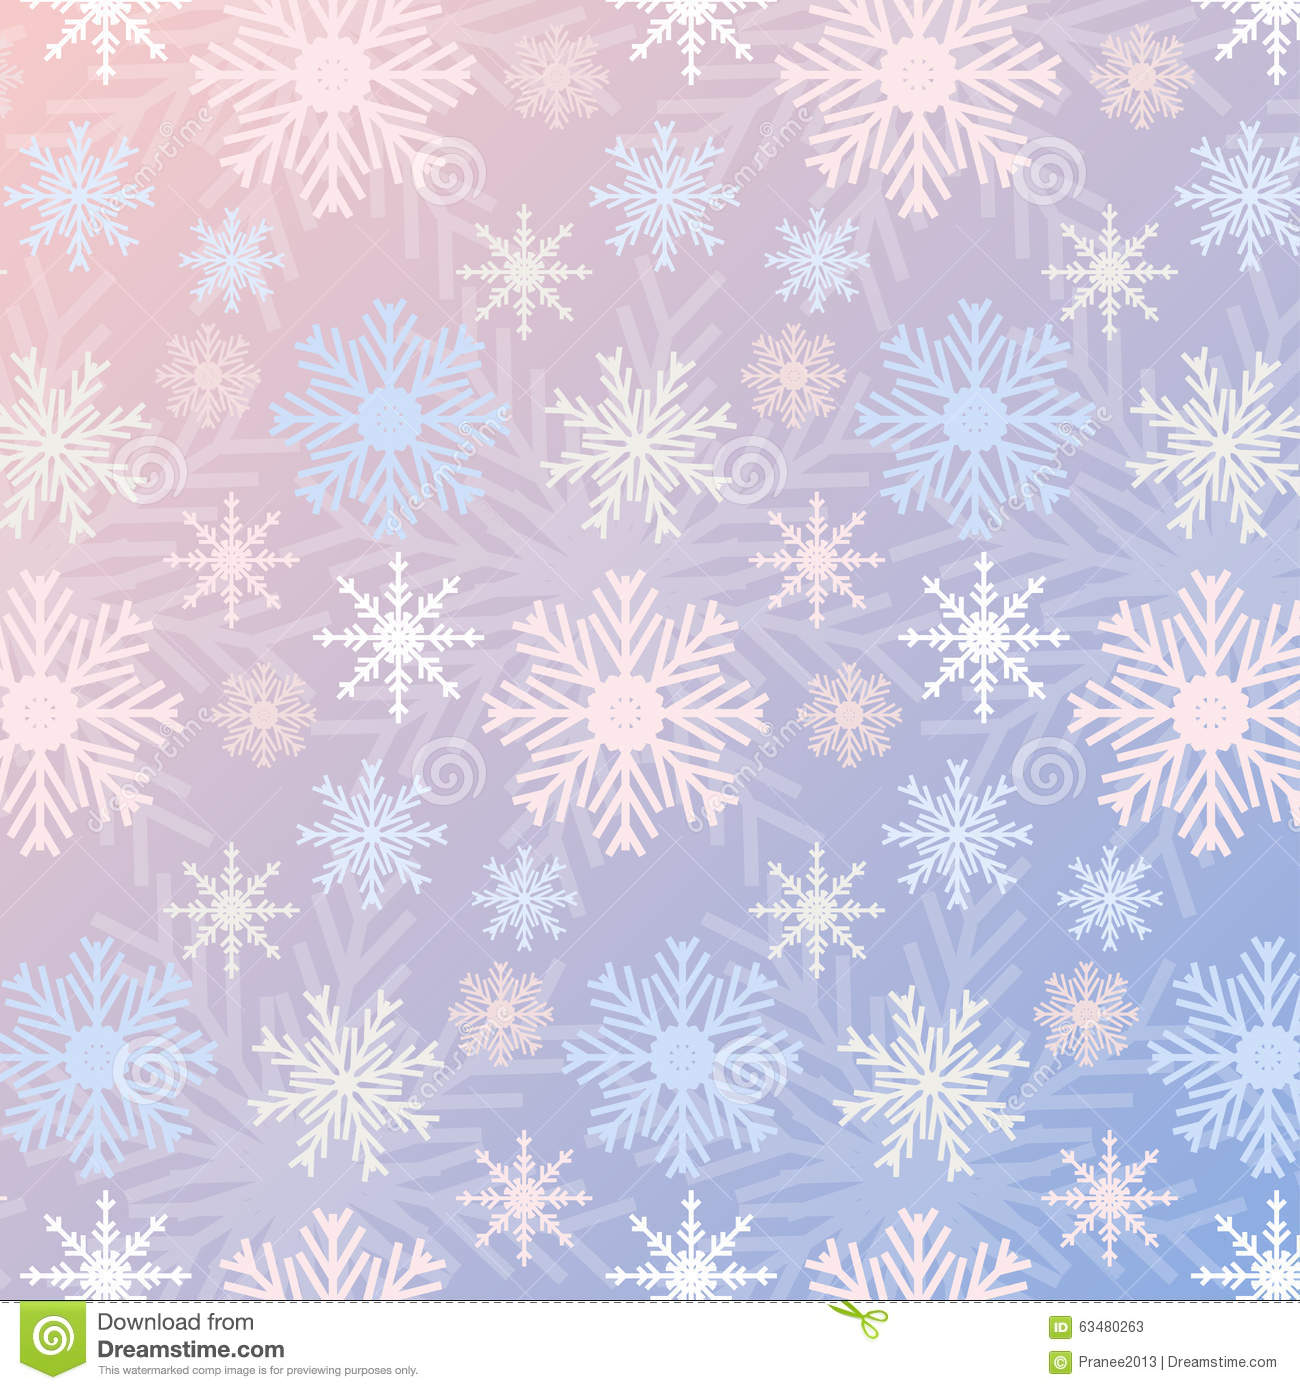 snowflake seamless pattern gradient rose quartz and serenity colored vintage background stock. Black Bedroom Furniture Sets. Home Design Ideas